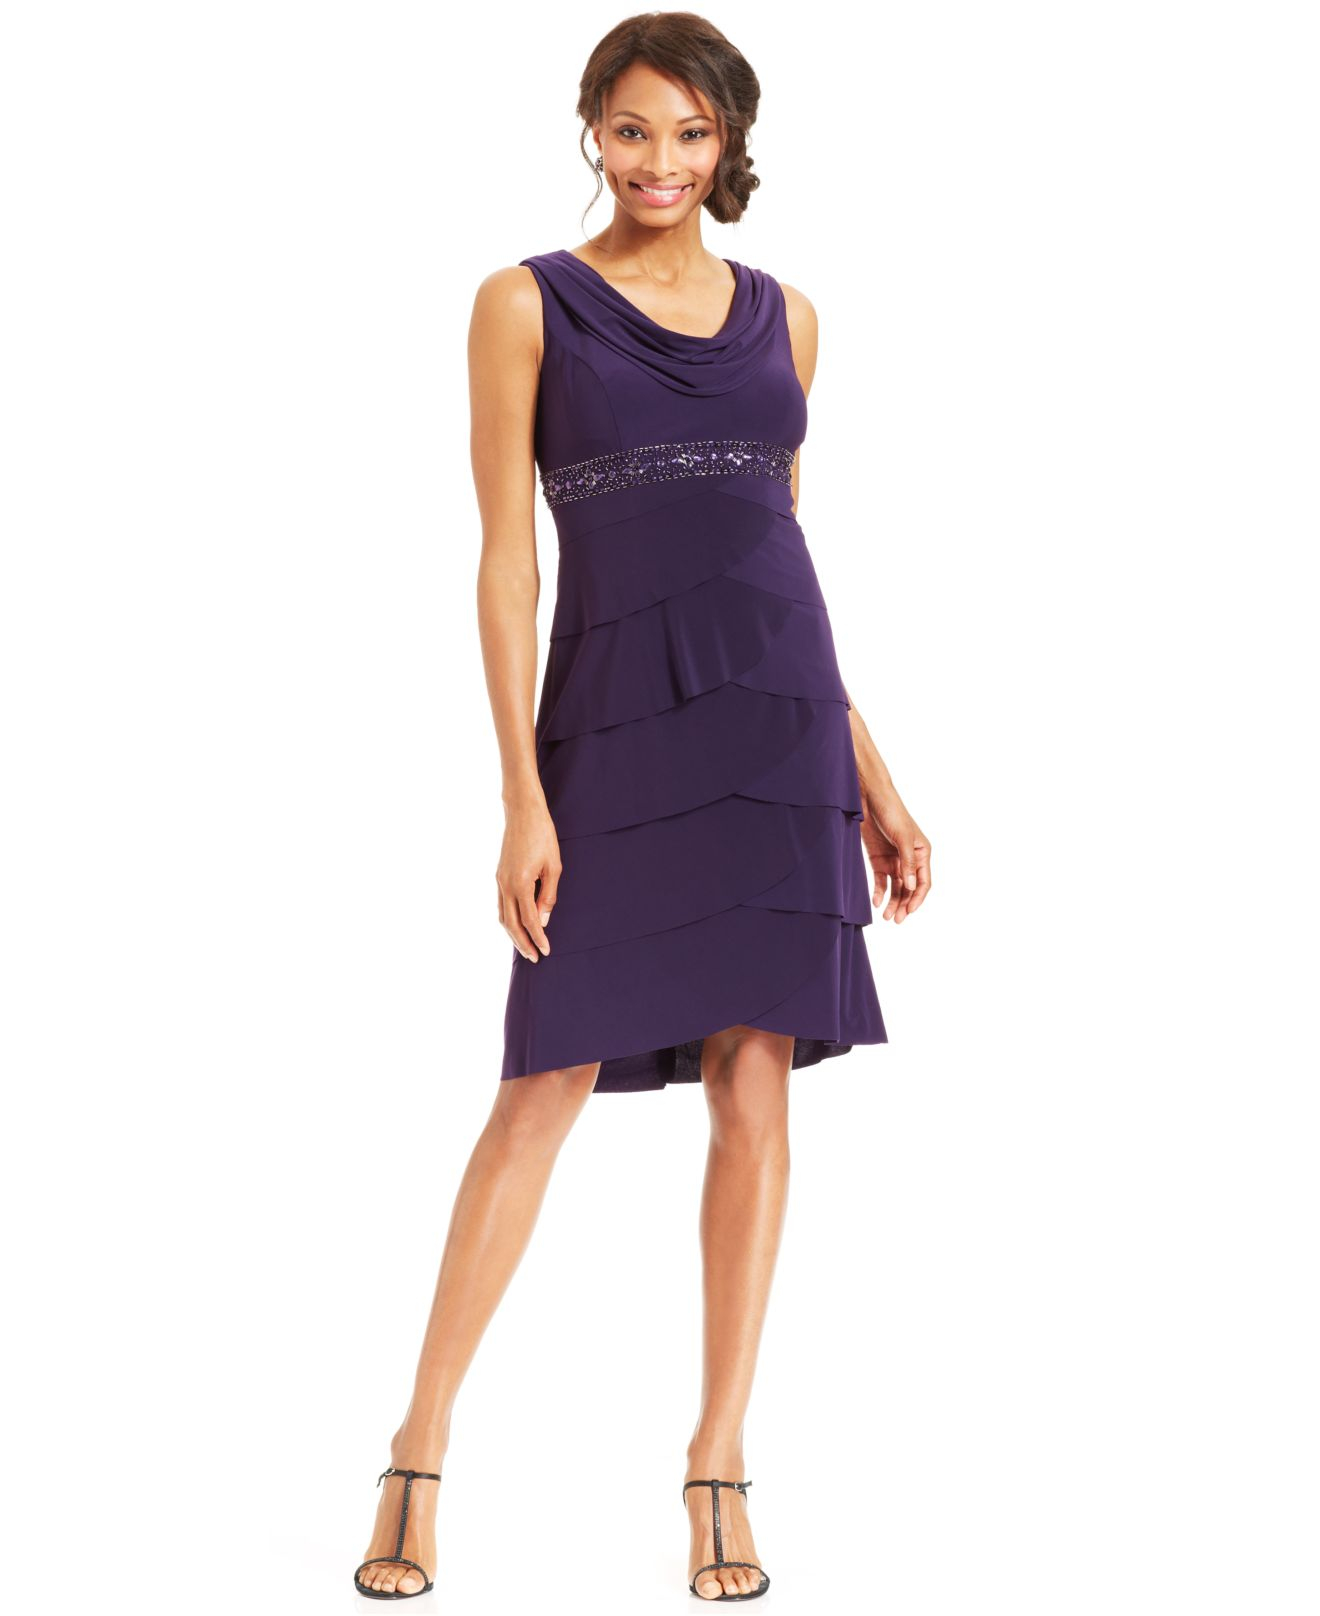 503d9cc5afe4 Alex Evenings Petite Beaded Cowl-Neck Dress And Jacket in Purple - Lyst